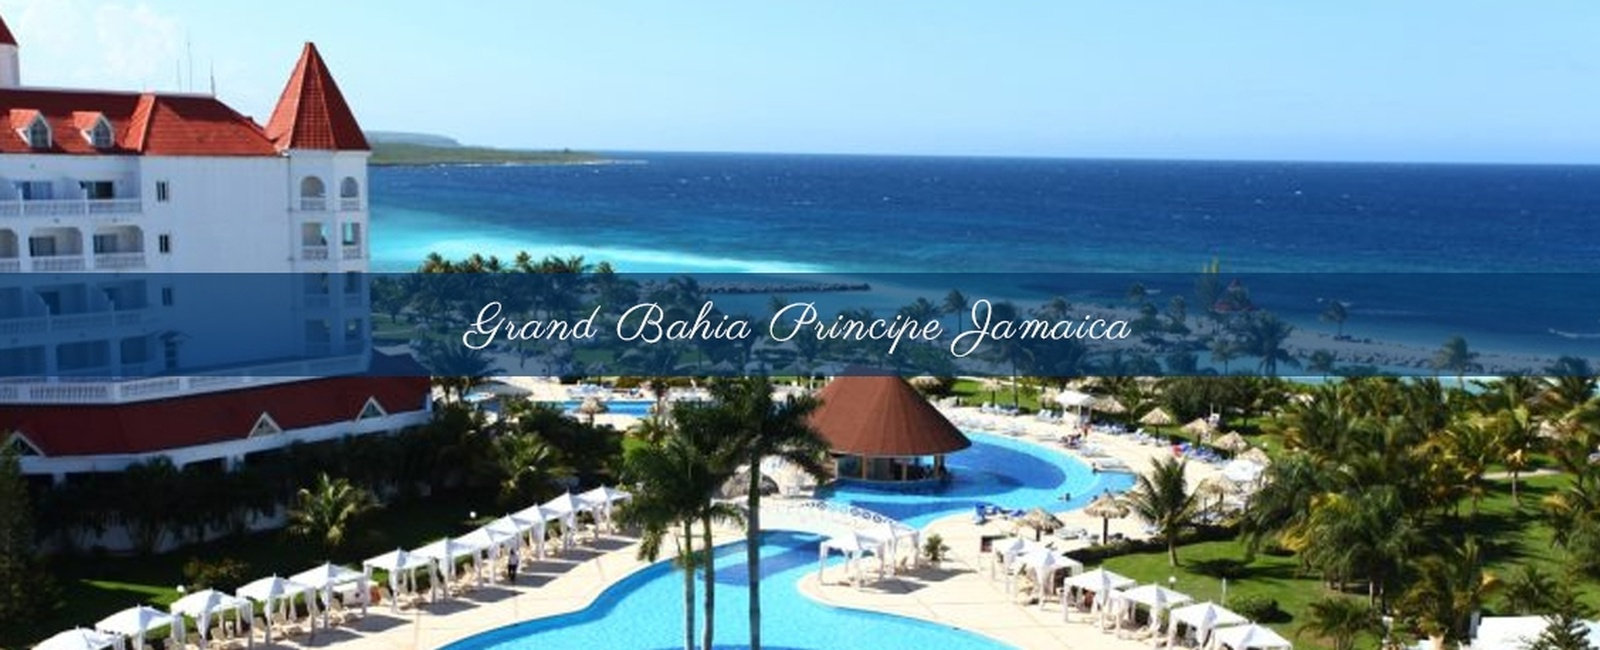 Grand Bahia Principe Jamaica - Destination Wedding, Honeymoon & Vow Renewal Packages Runaway Bay, Jamaica by My Wedding Away